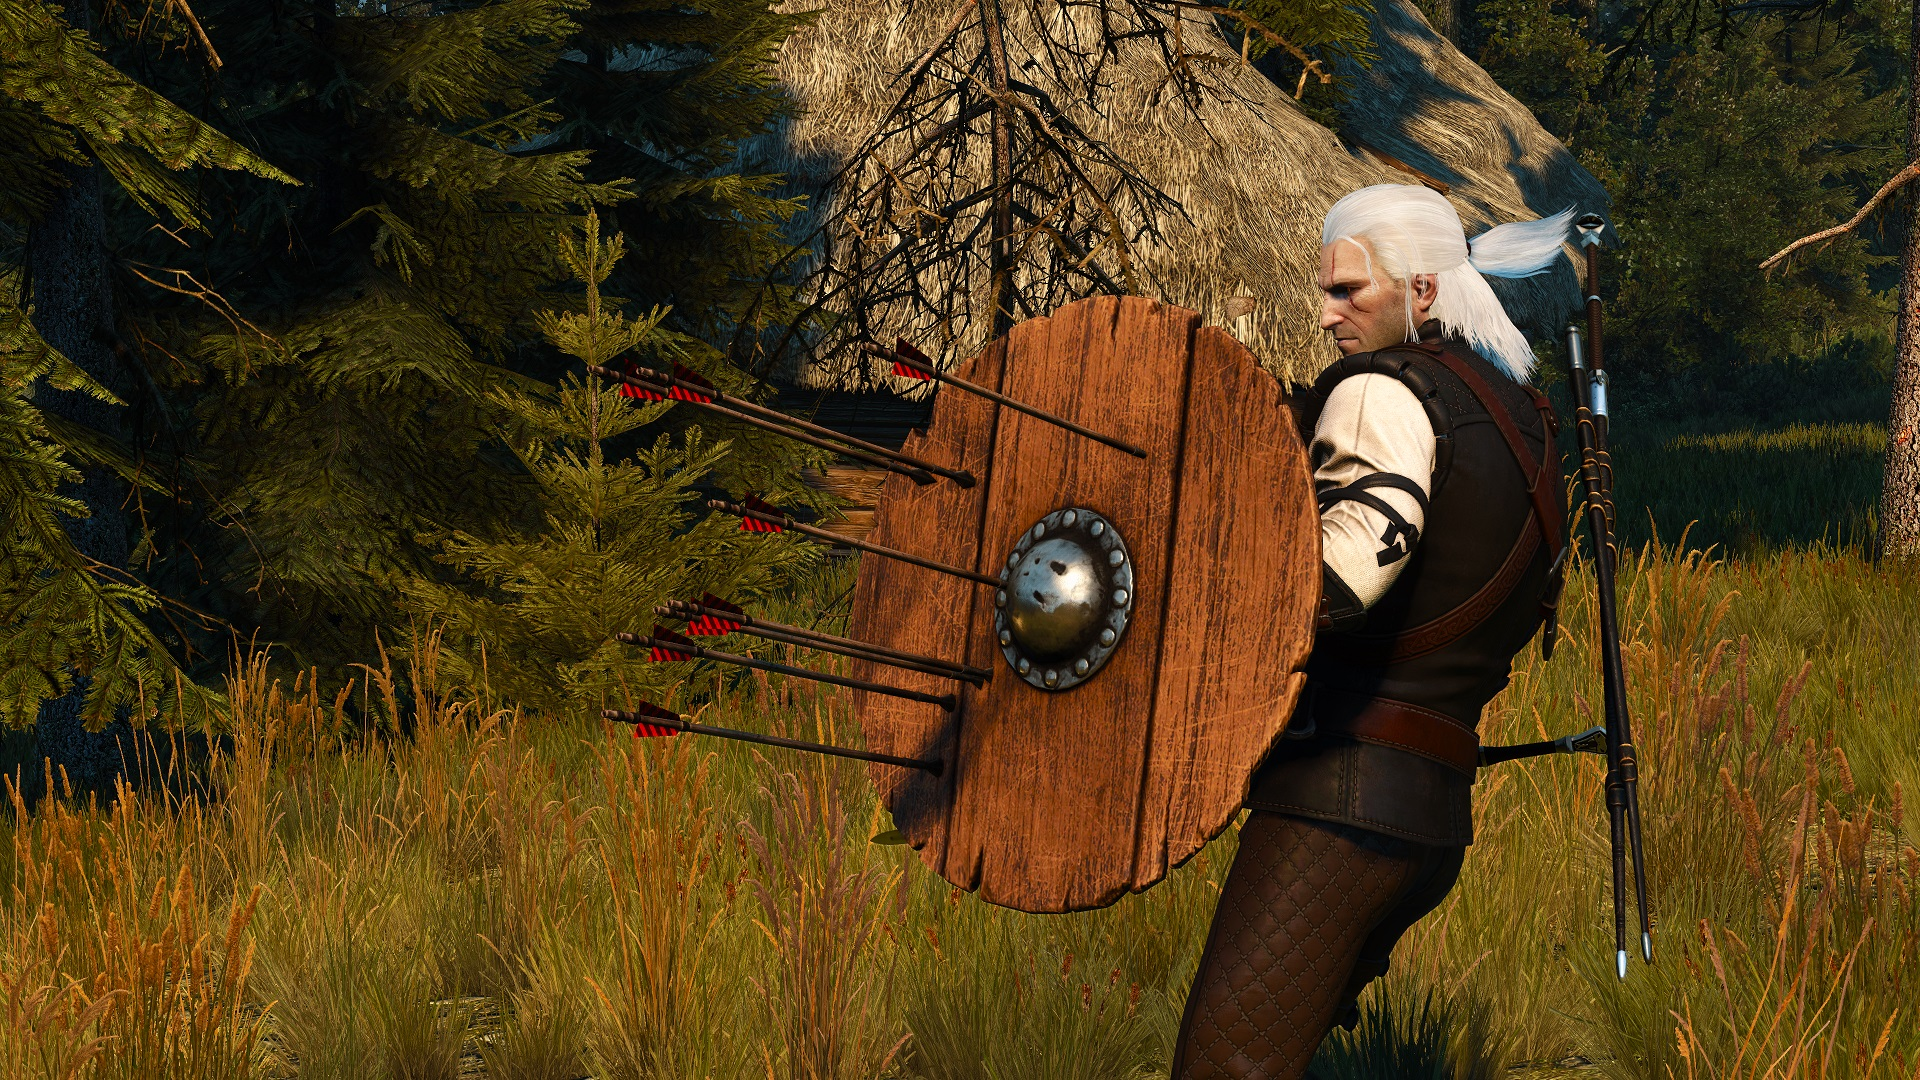 Mod for The Witcher 3 lets Geralt use shields | PC Gamer